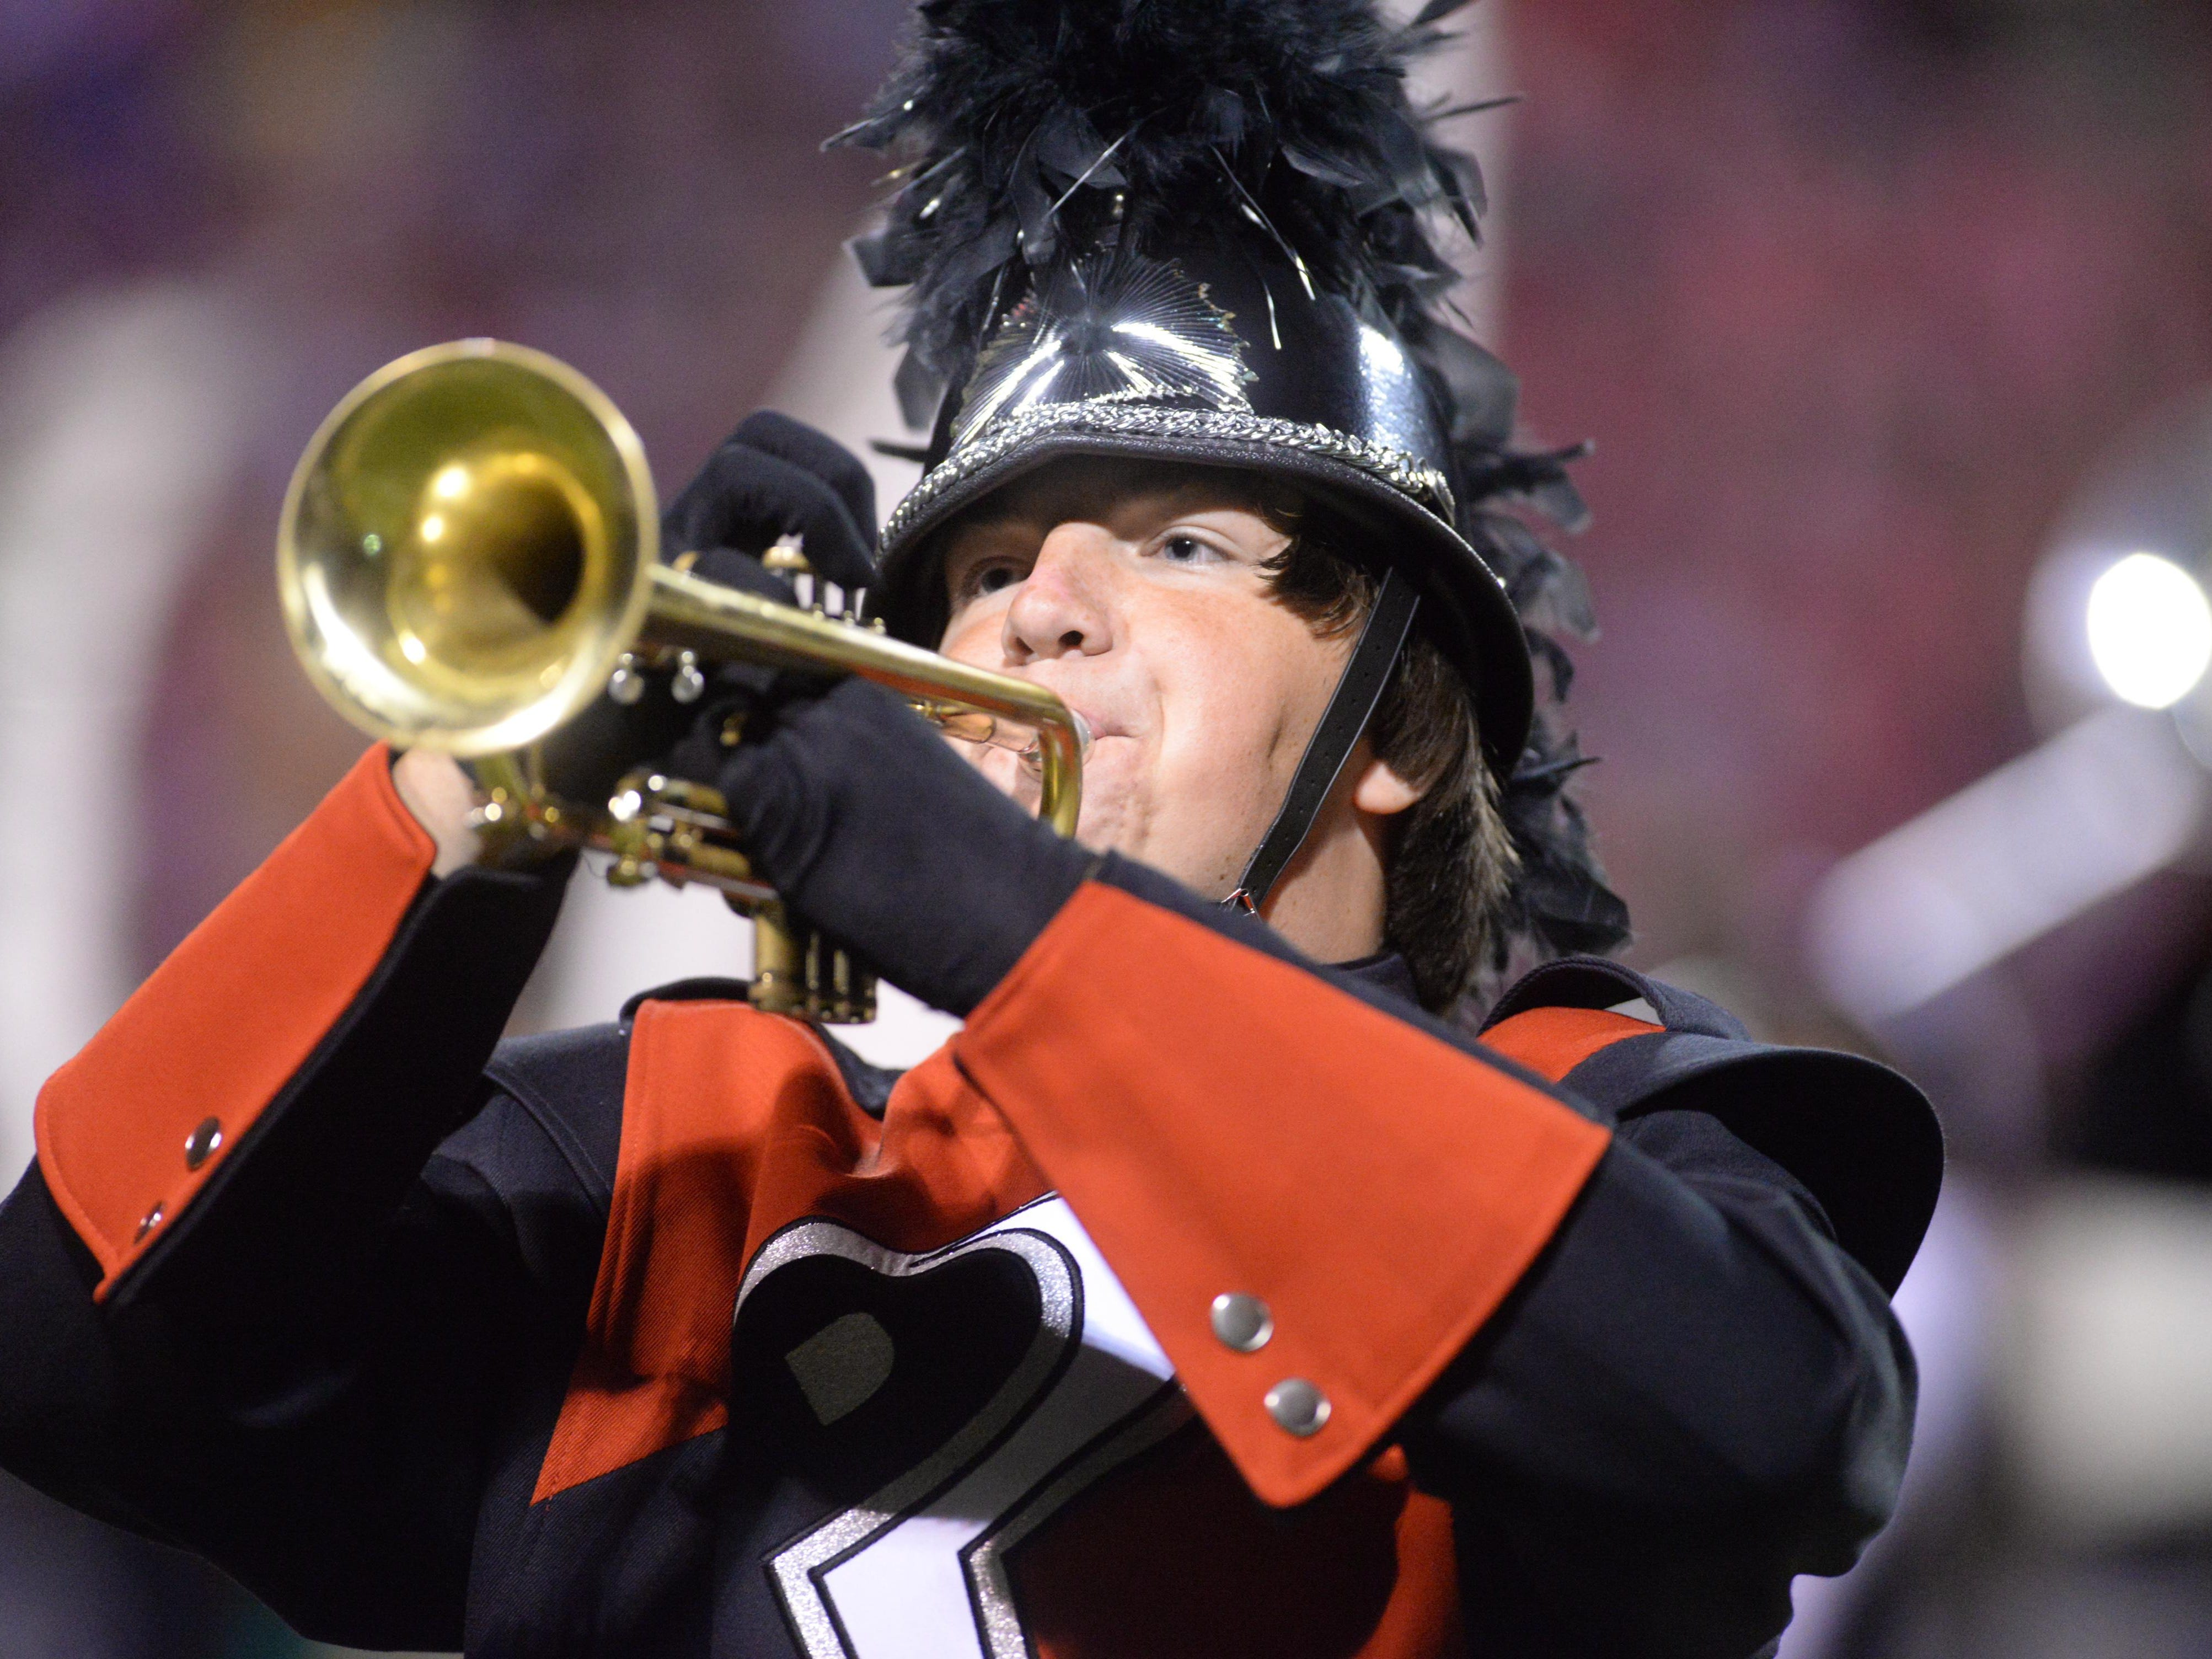 A trumpet sounds during the halftime show of the Parkway High School football game October 2, 2015.